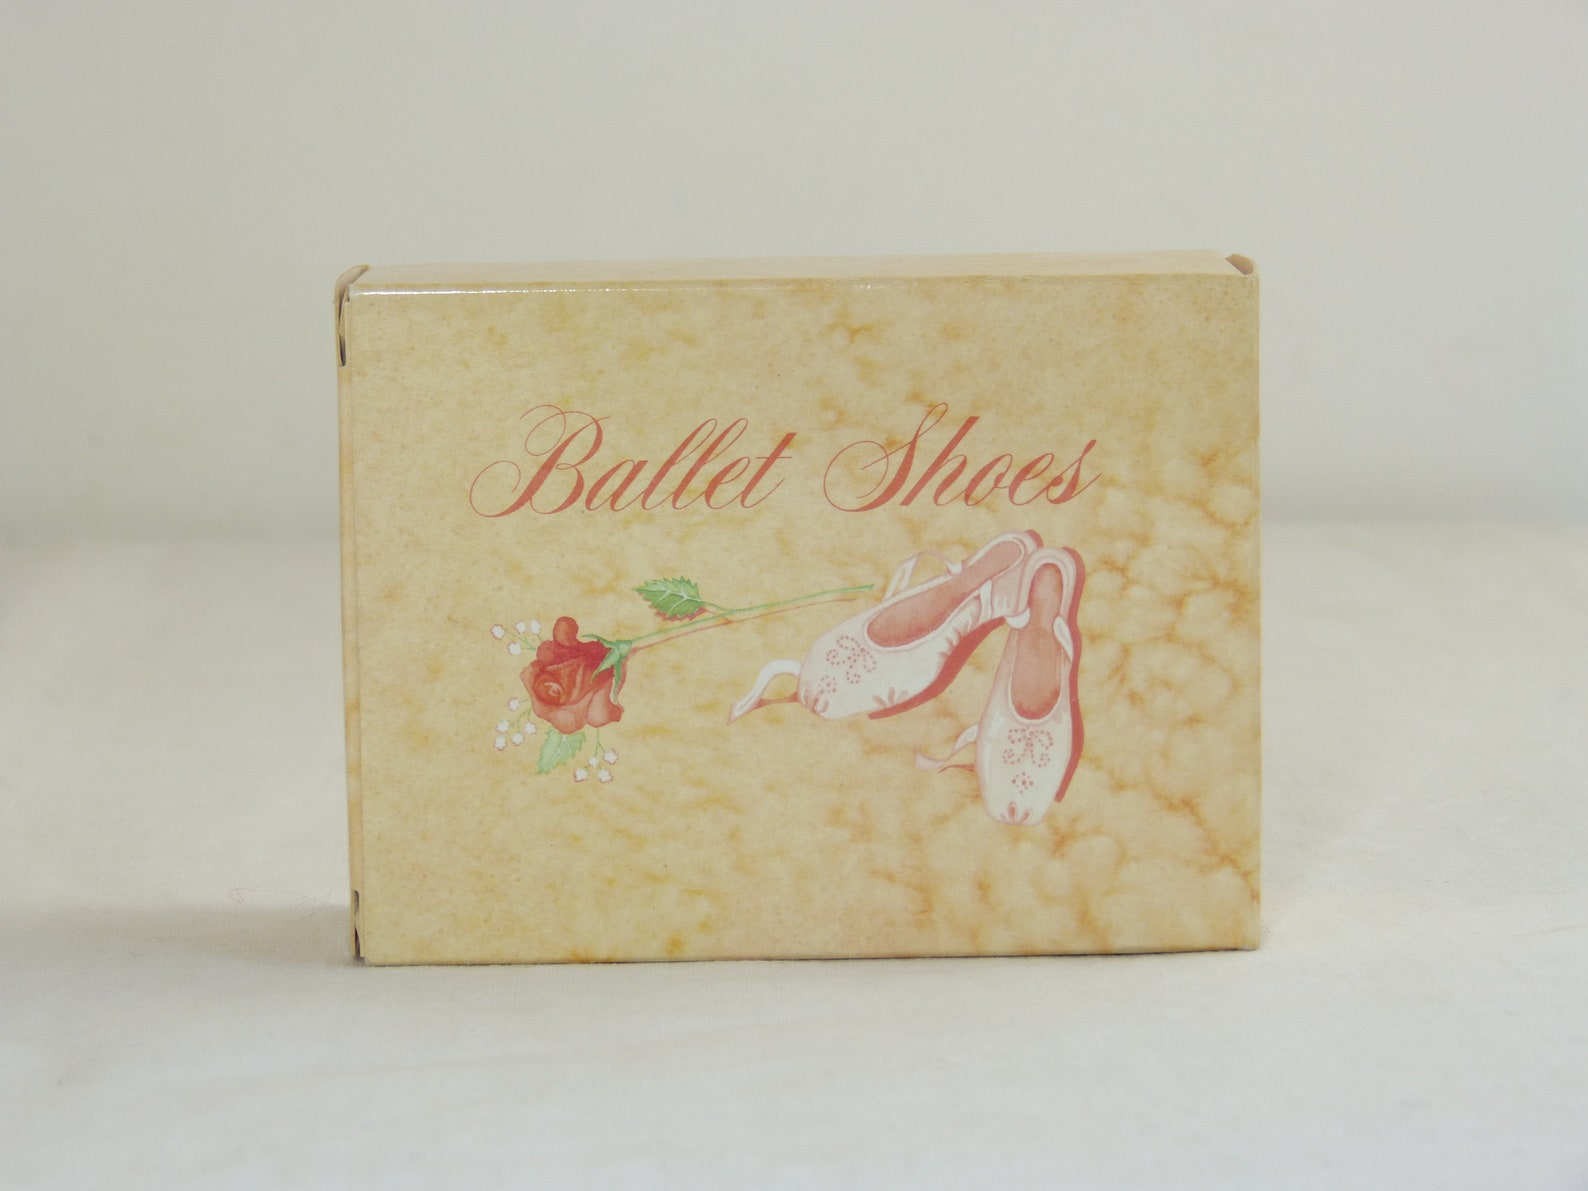 ballet shoes avon soap set in original box - unused pink classic dance pointe shoe novelty toiletry - french 70s 80s vintage